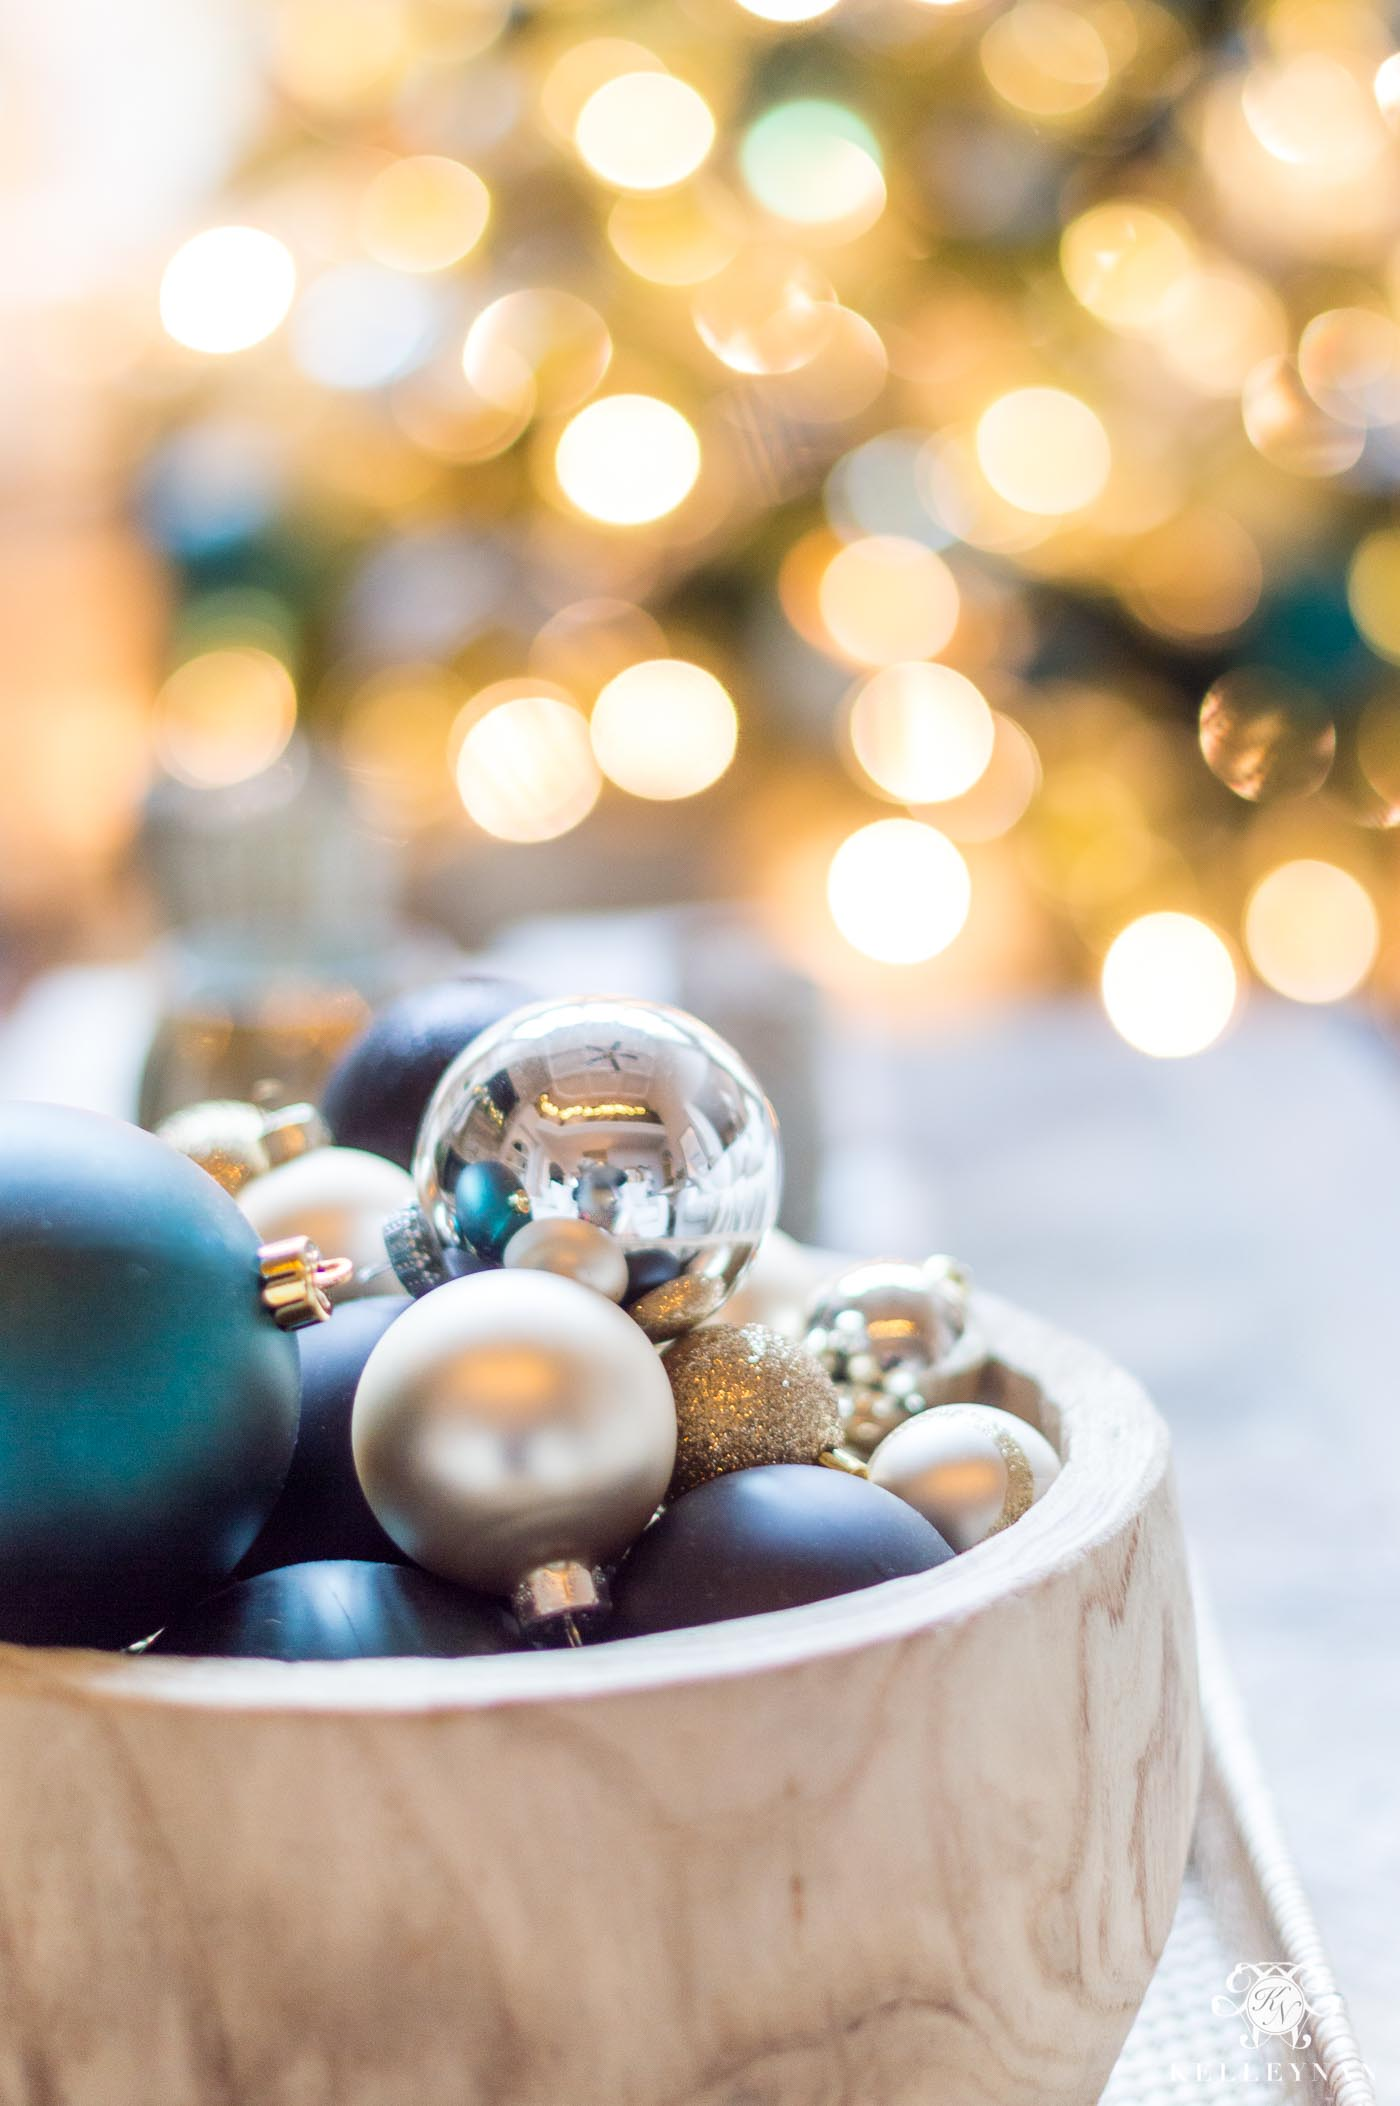 How to photography blurry lights as a bokeh Christmas background